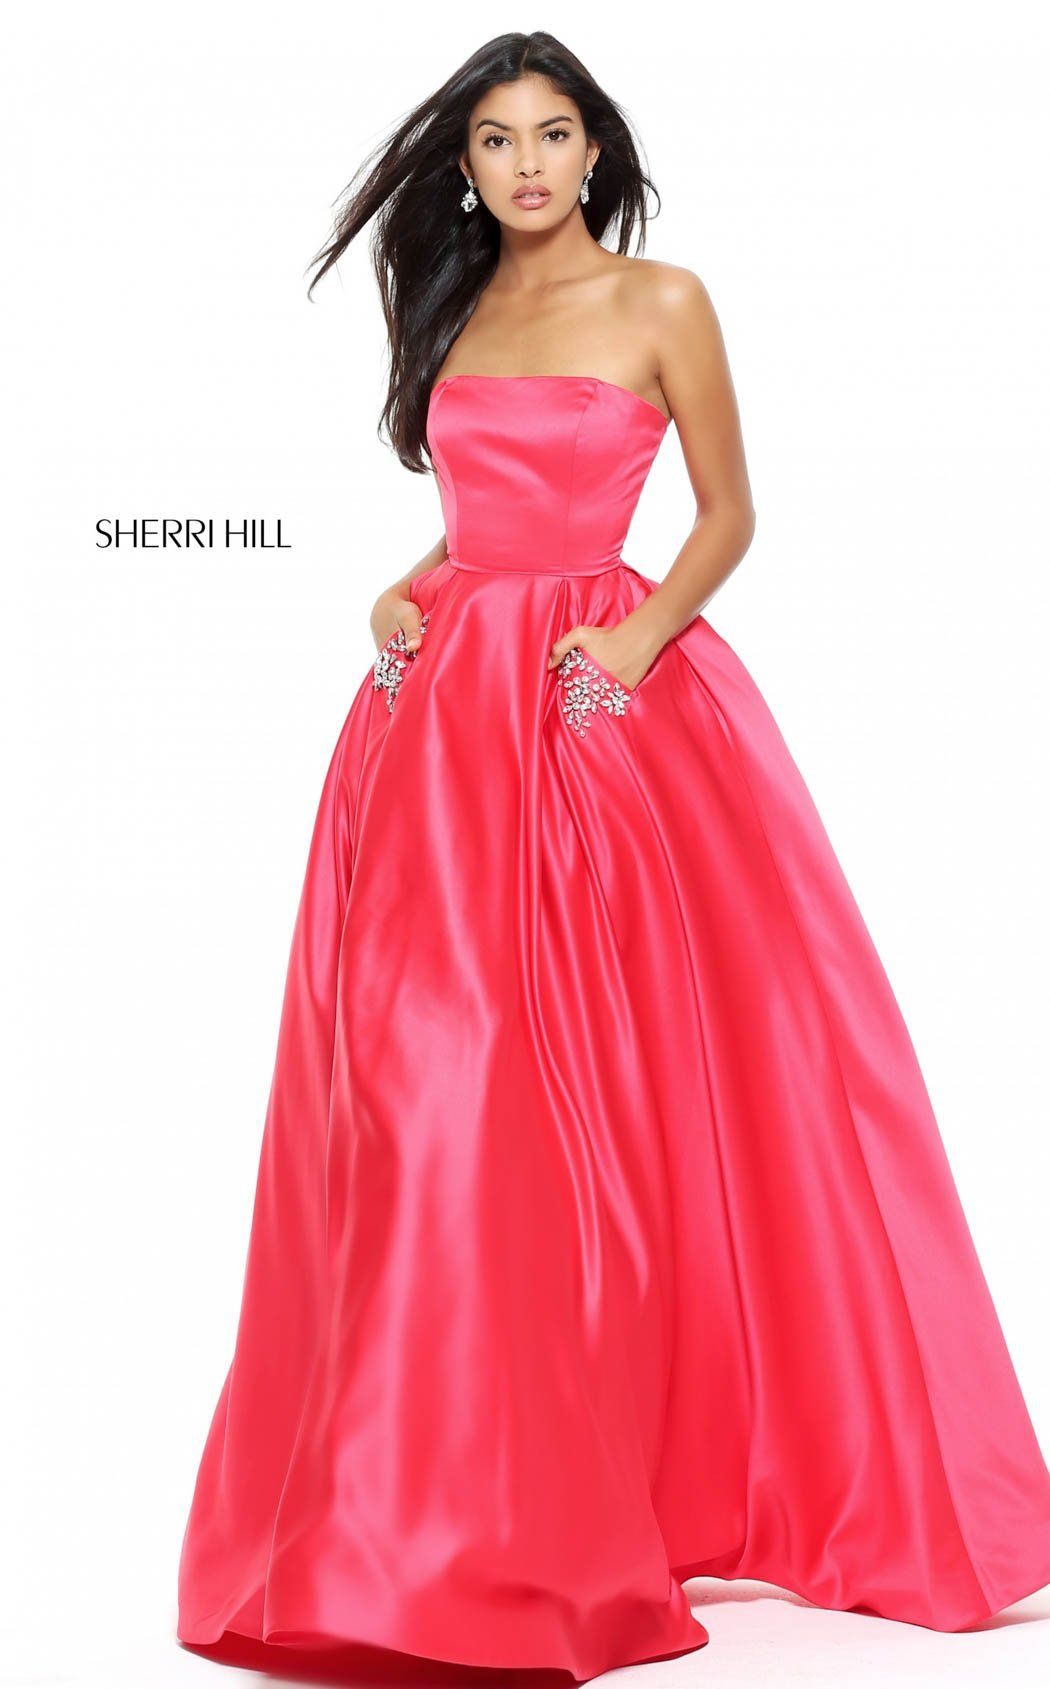 Sherri hill 娘娘 pinterest bodice and products